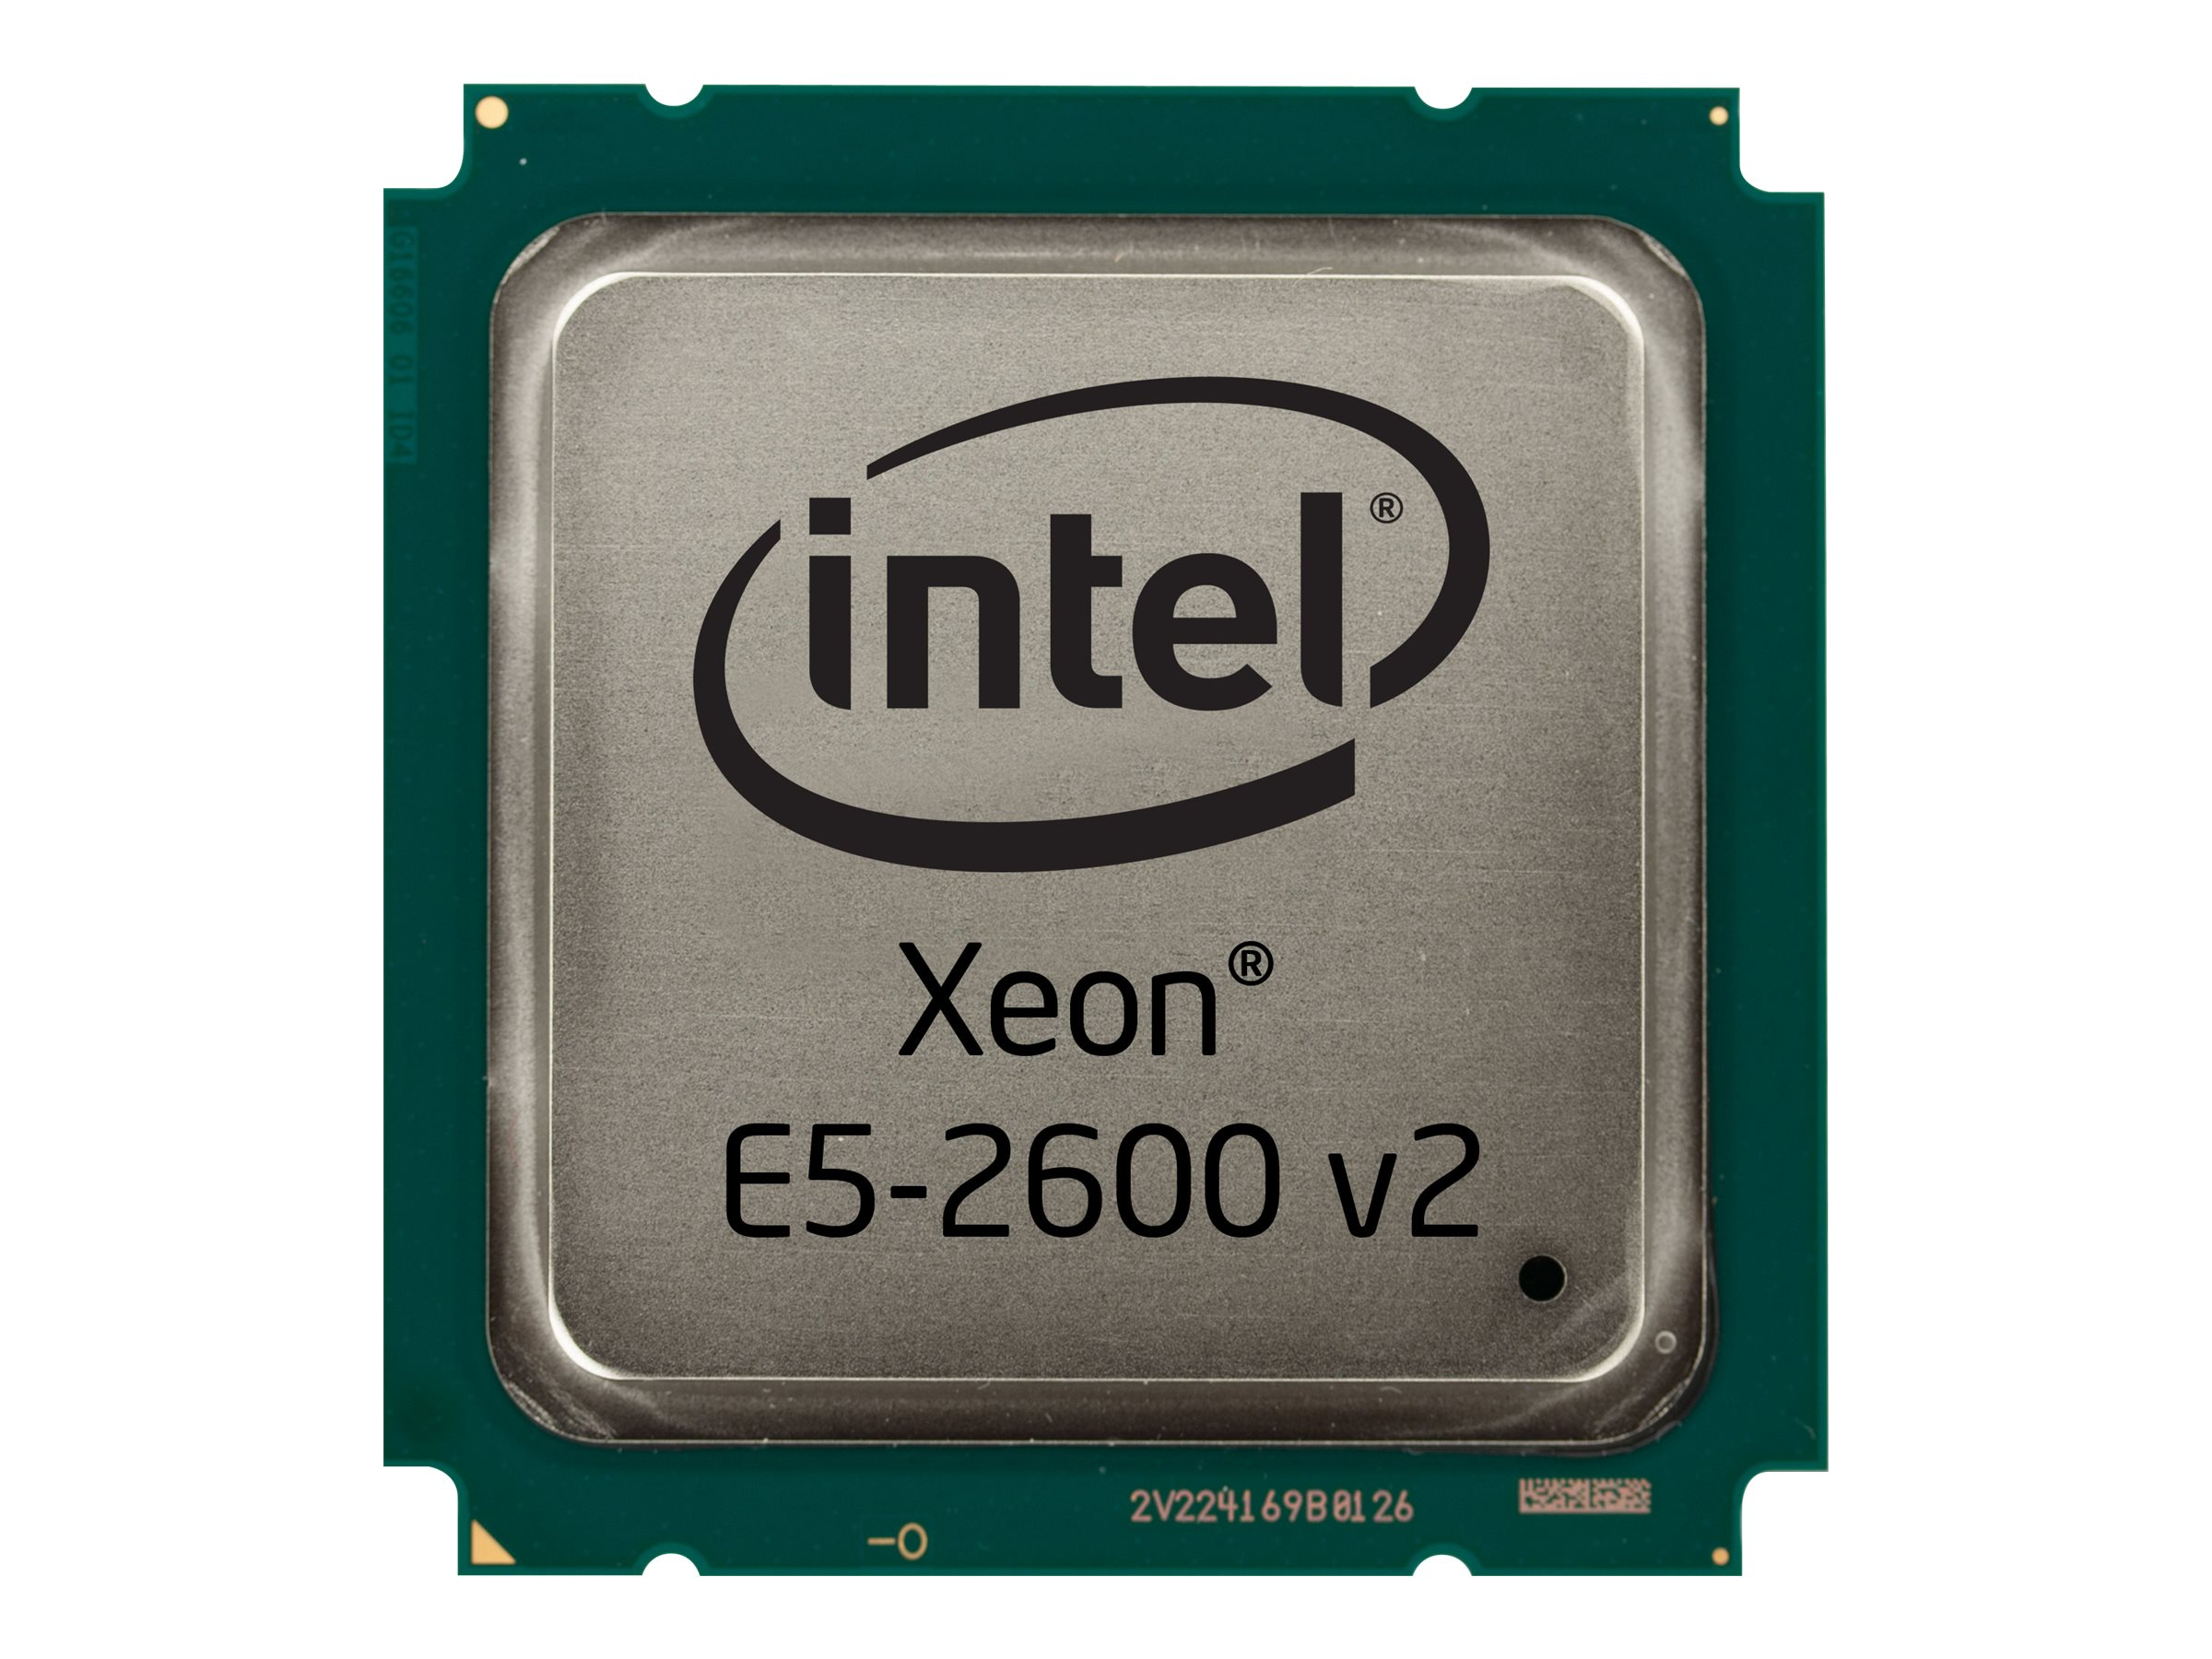 Intel Xeon E5-2620V2 - 2.1 GHz - 6 Kerne - 12 Threads - 15 MB Cache-Speicher - LGA2011 Socket